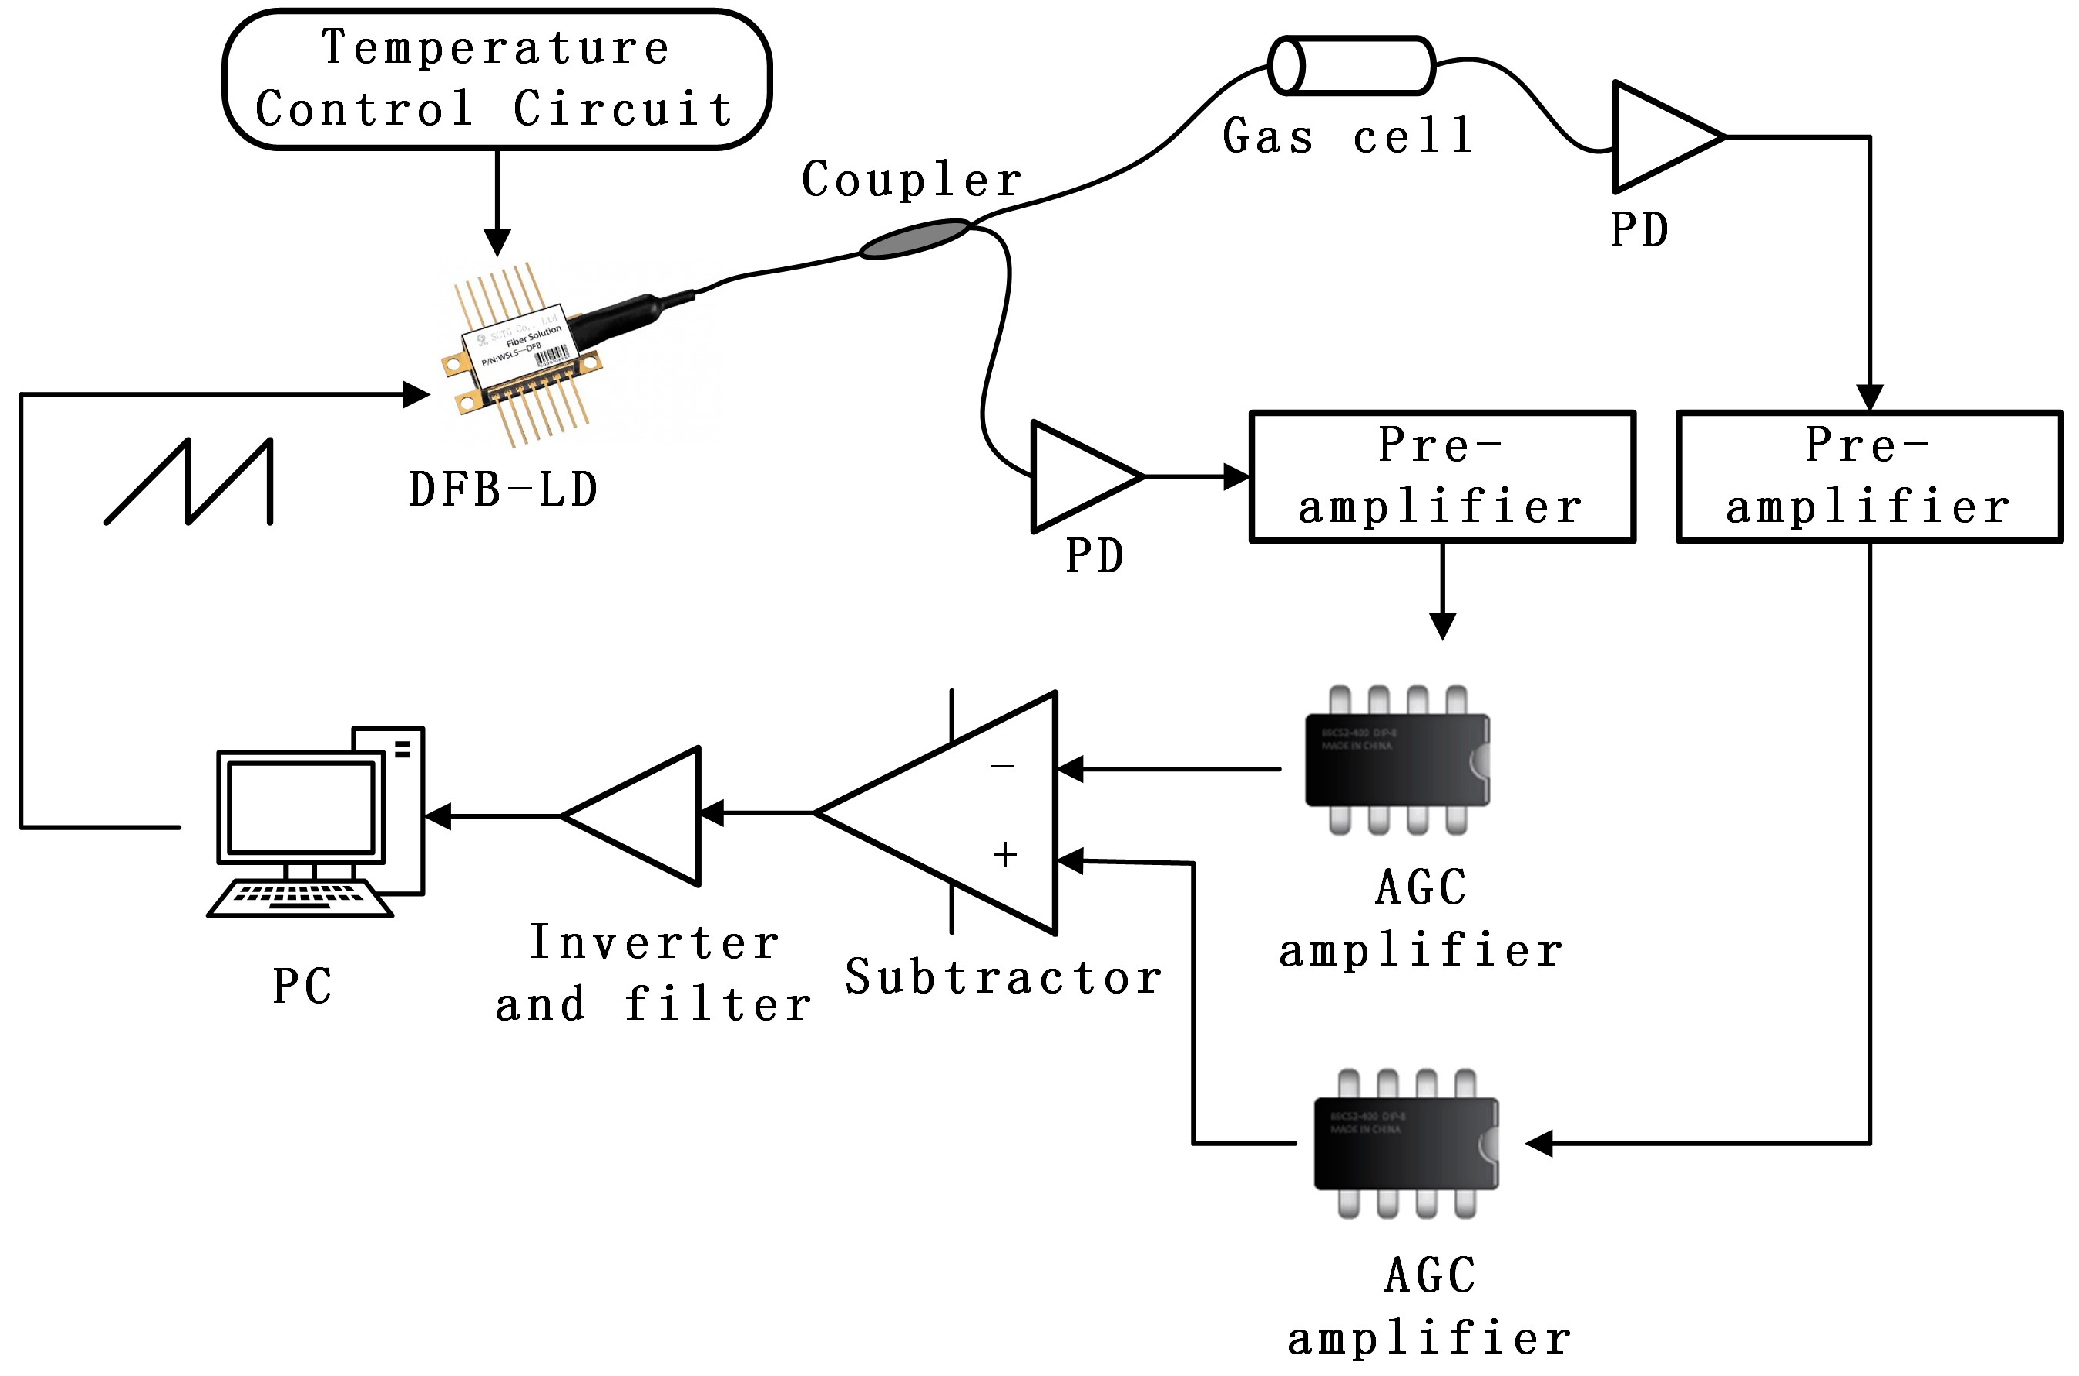 Fiber Optic Controls Wiring Diagram Detailed Schematic Diagrams Sensors Free Full Text A Robust Distributed Multipoint Home